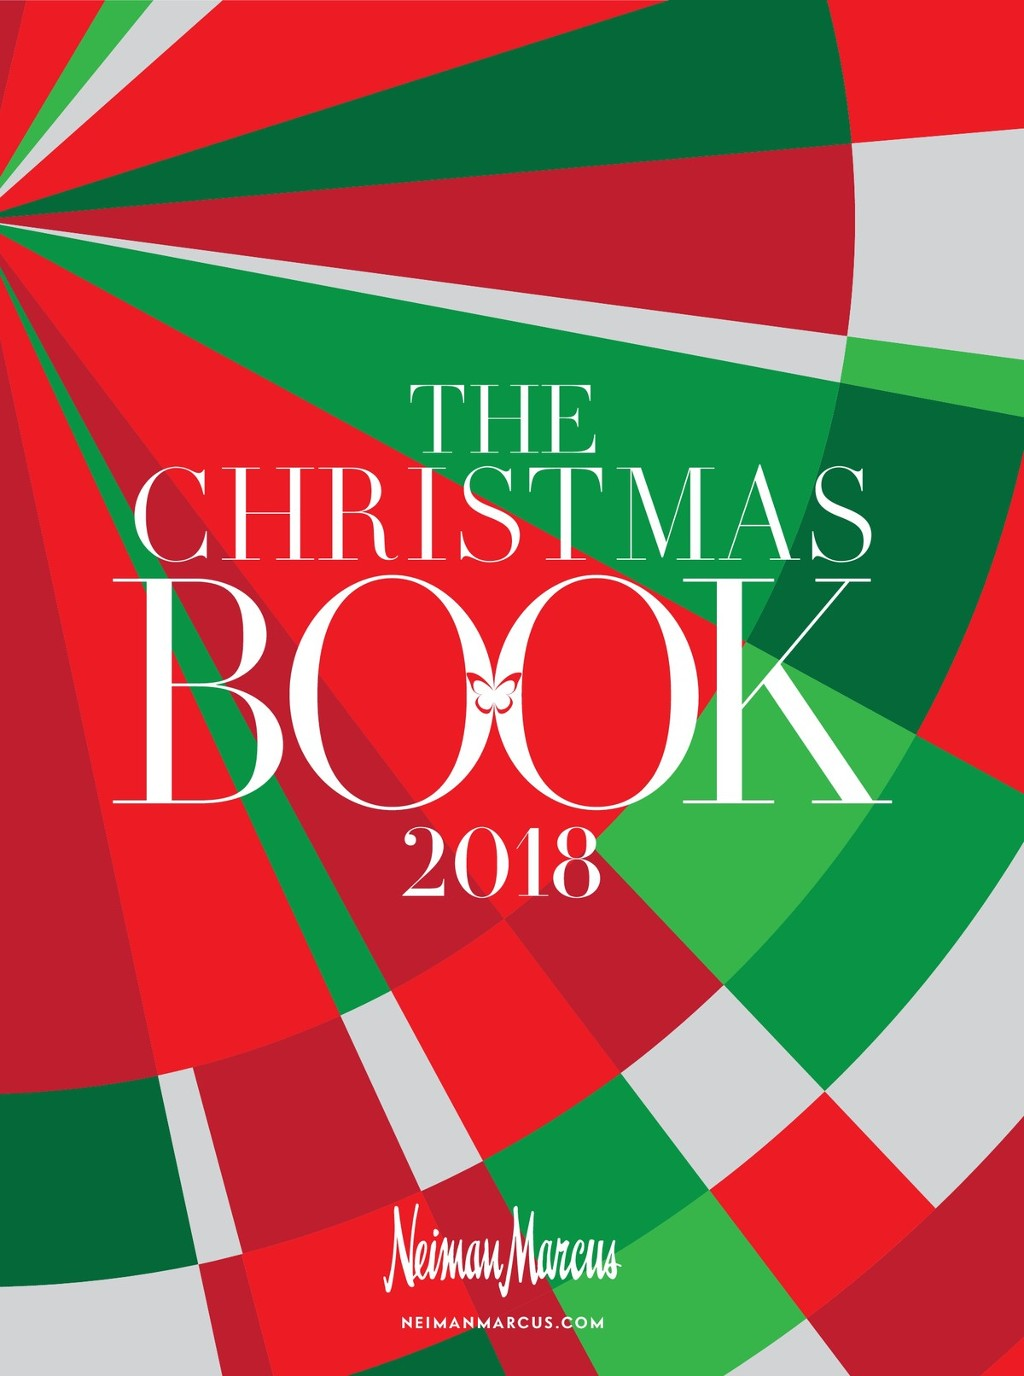 The Complete 2018 Christmas Book At Neiman Marcus